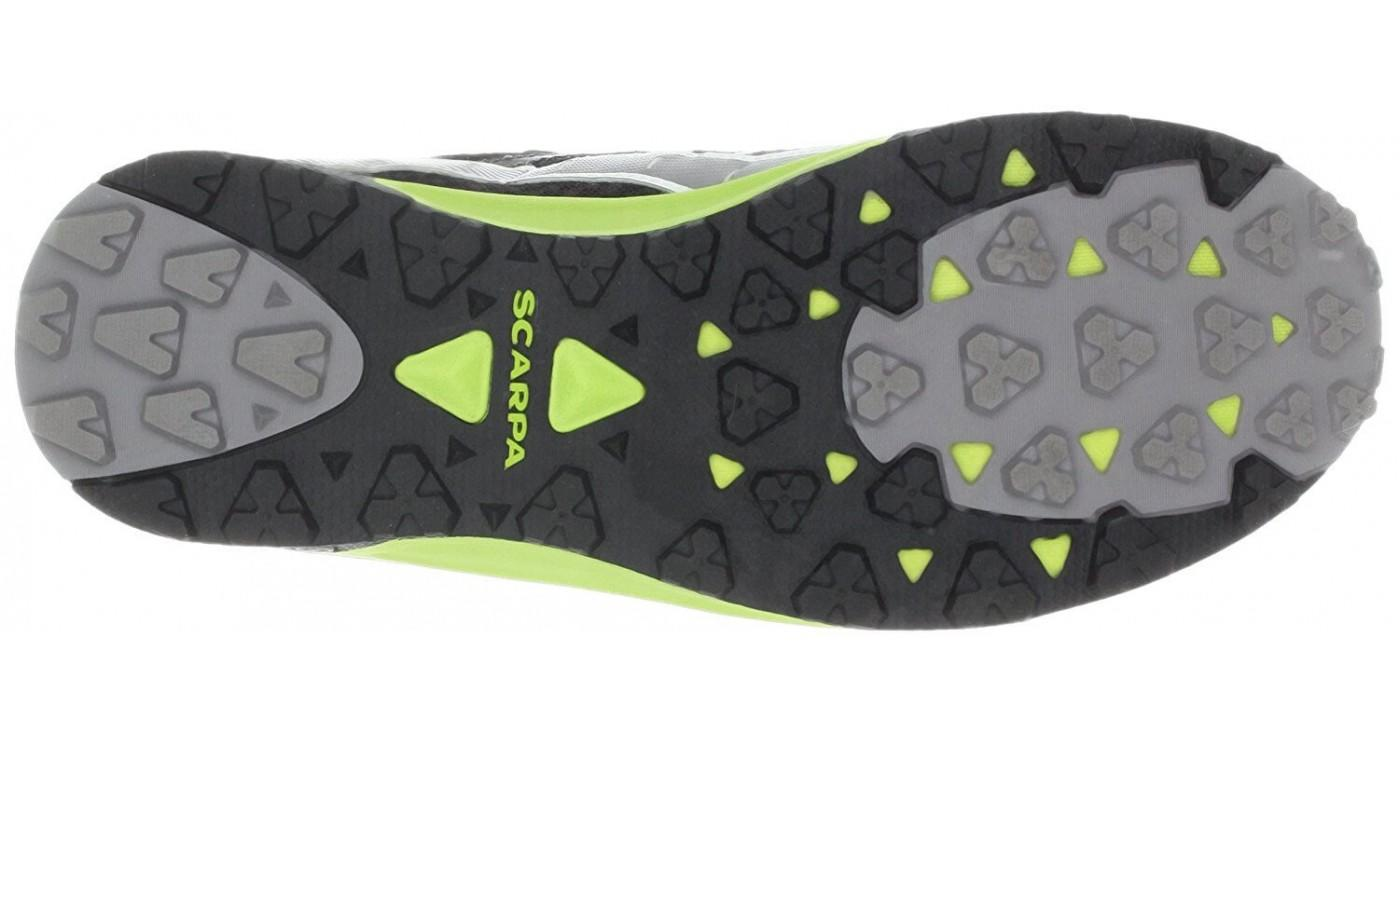 the Scarpa Spark's outsole is covered with 2.5mm lugs